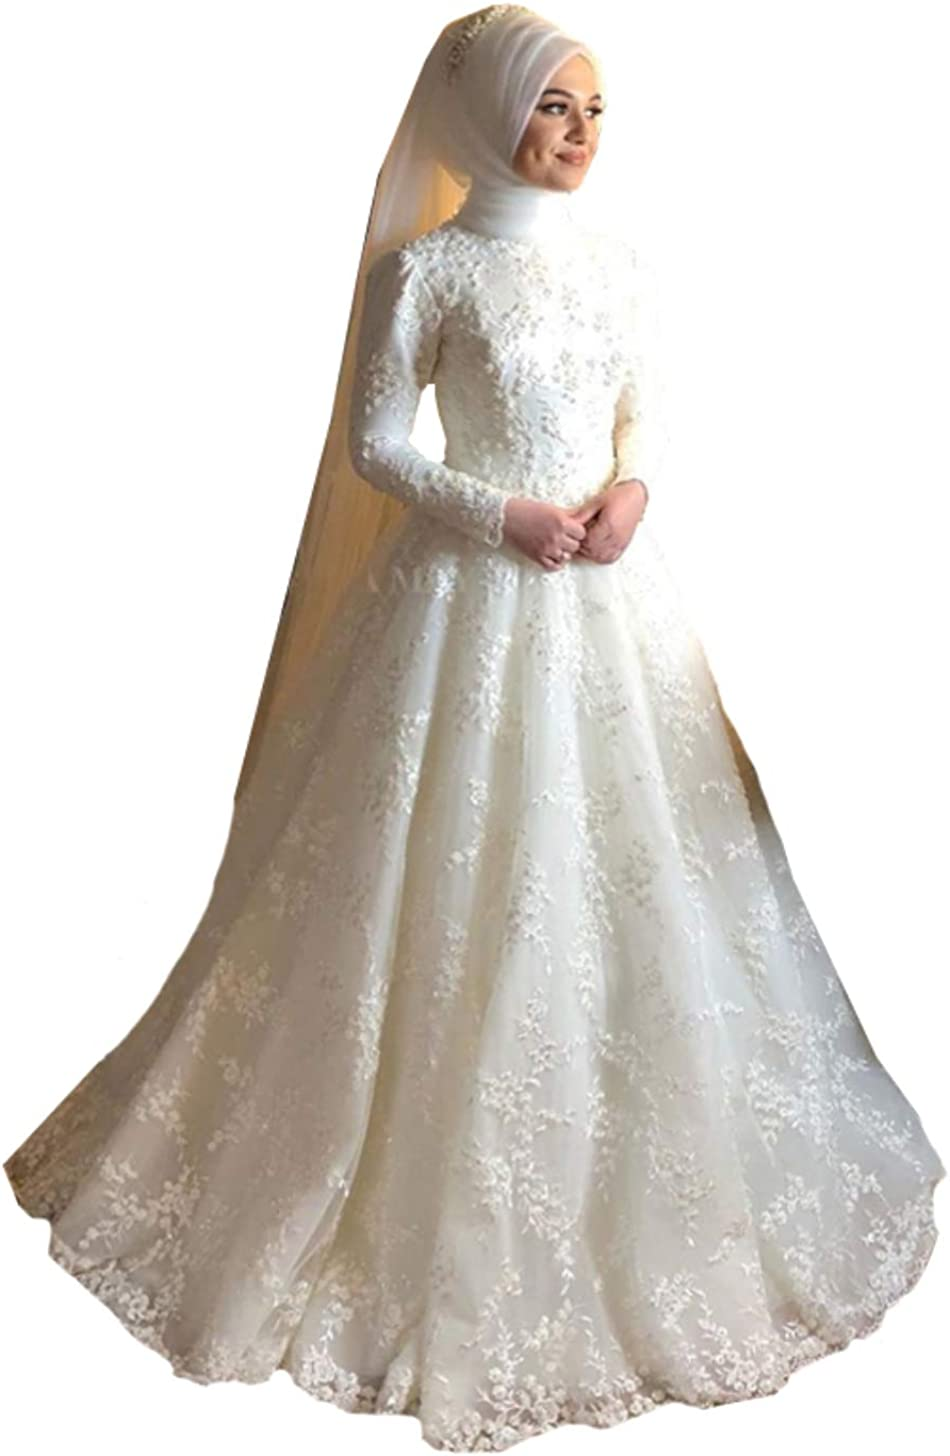 Melisa Women's Long Sleeves Bridal Ball Gowns Lace Sequins Appliques Train Wedding Dresses for Bride 2021